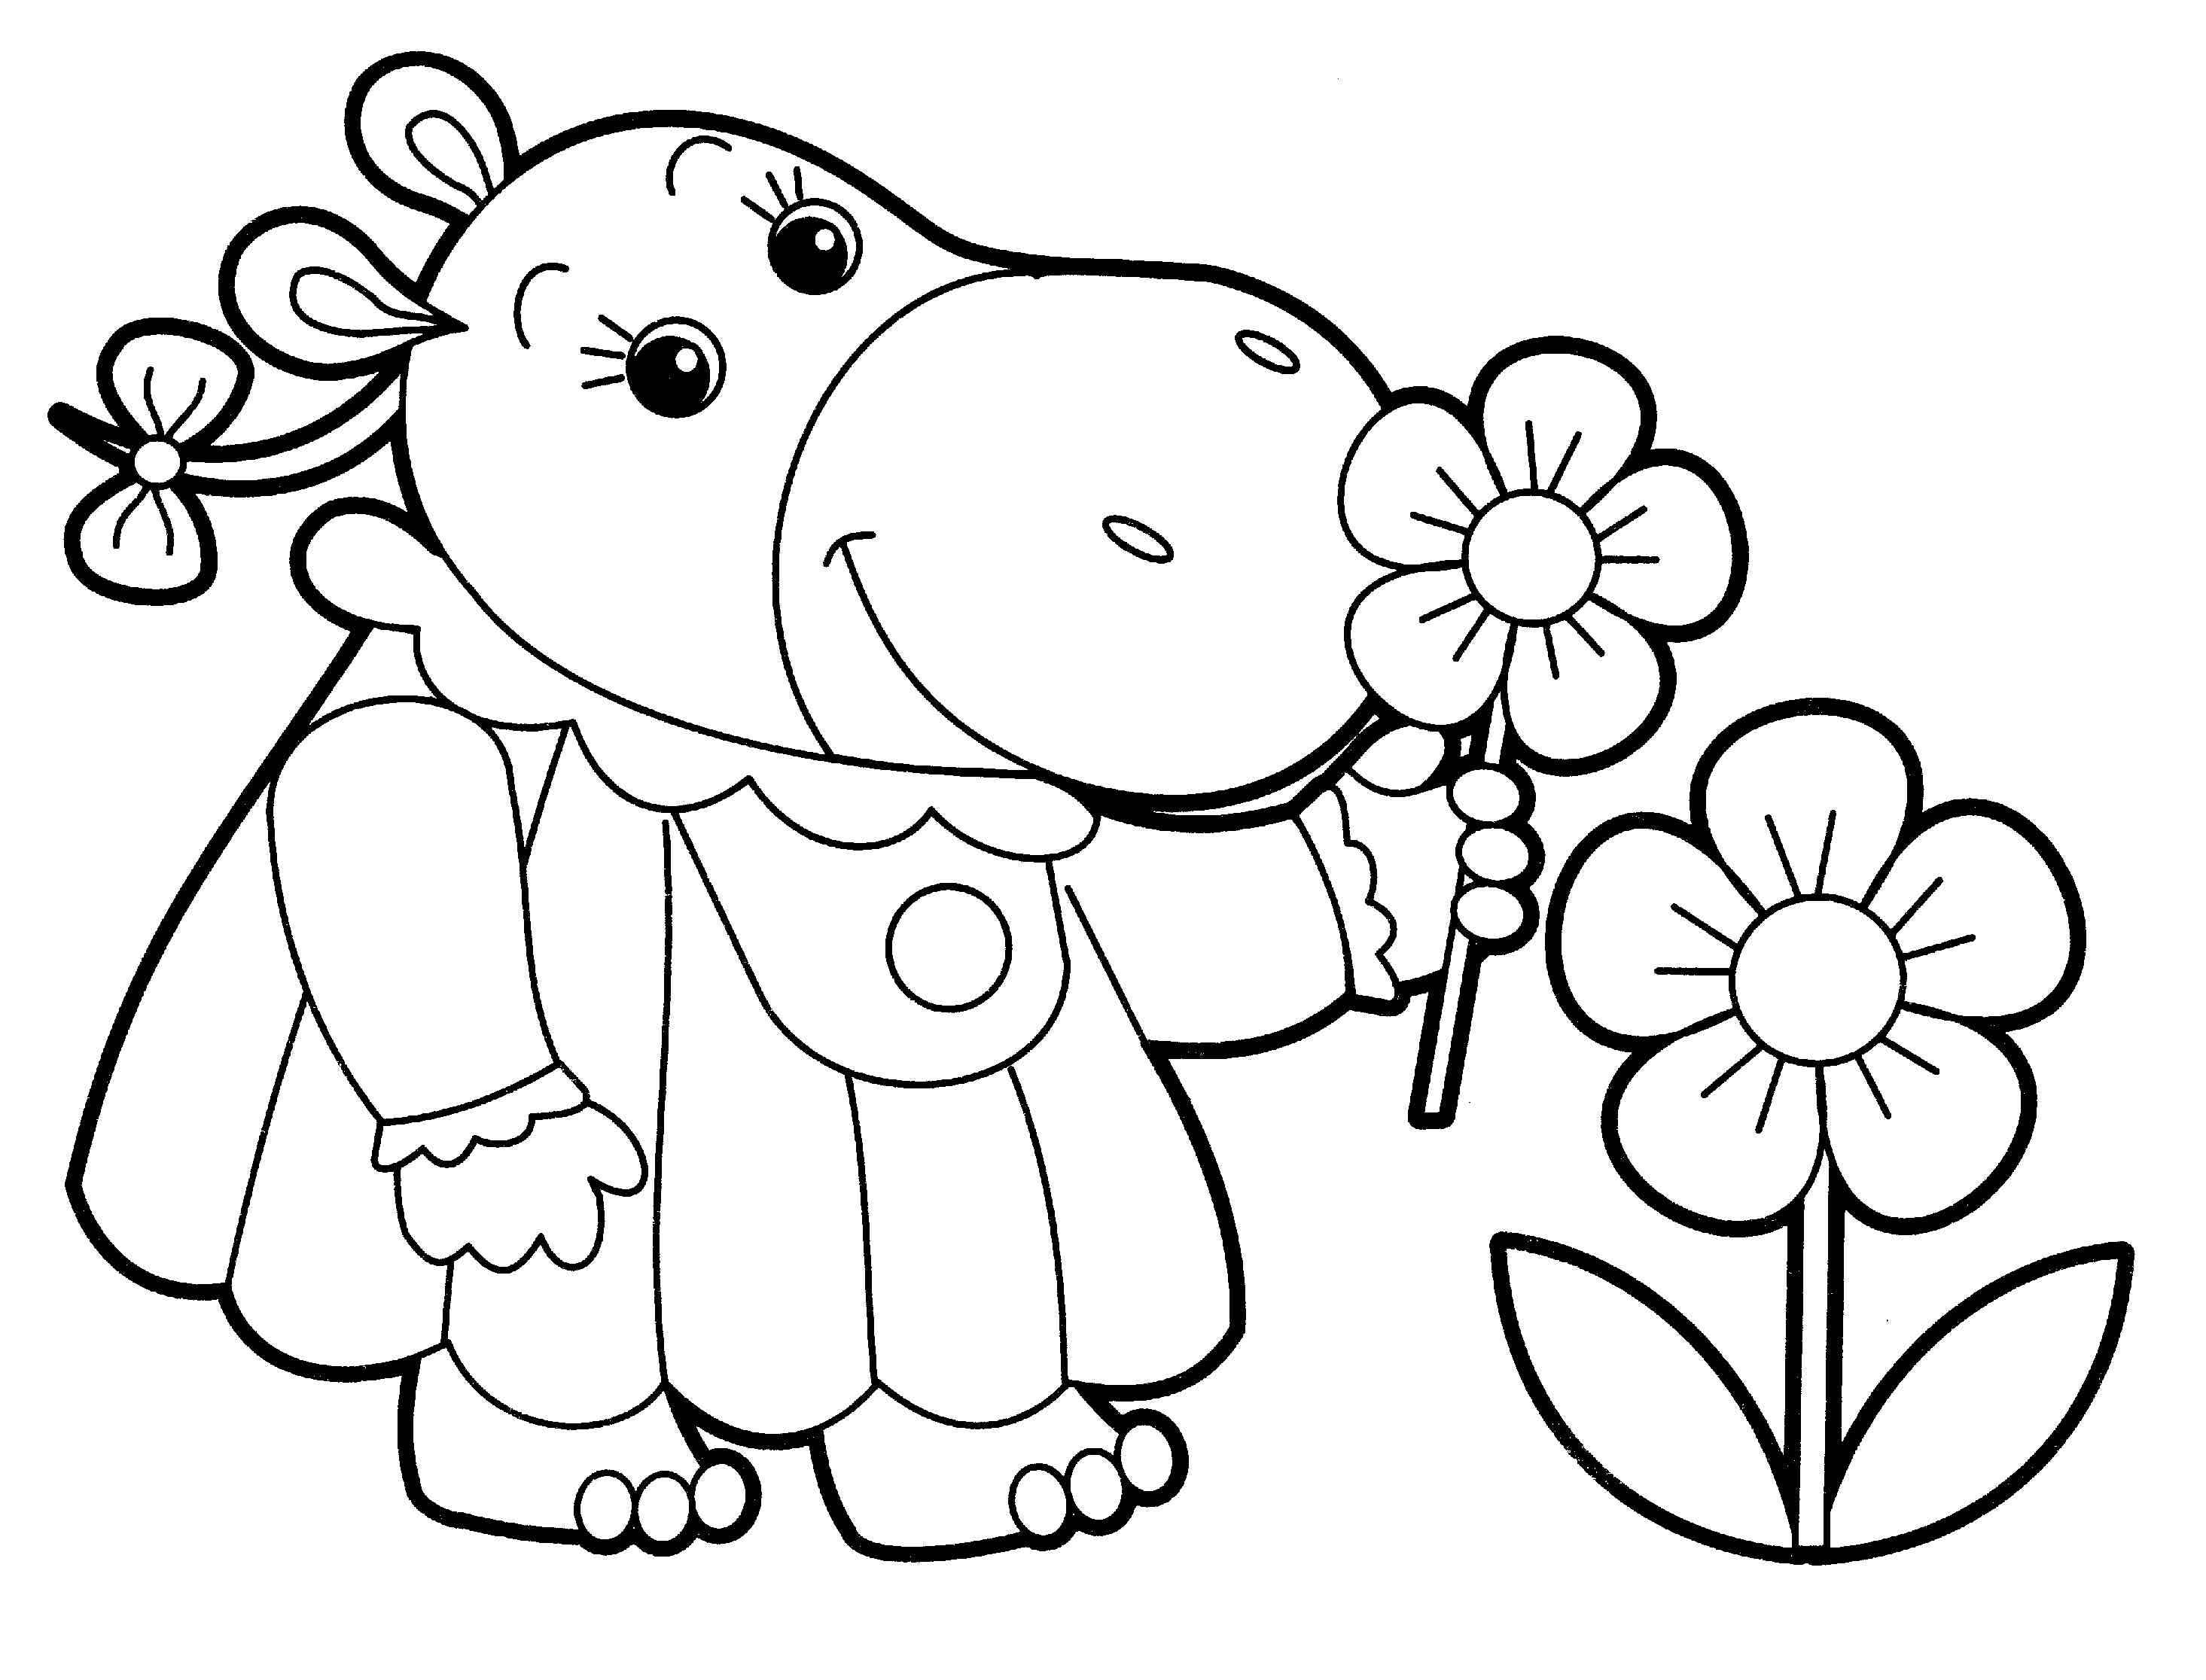 Flower Coloring Pages For Toddlers At Getdrawings